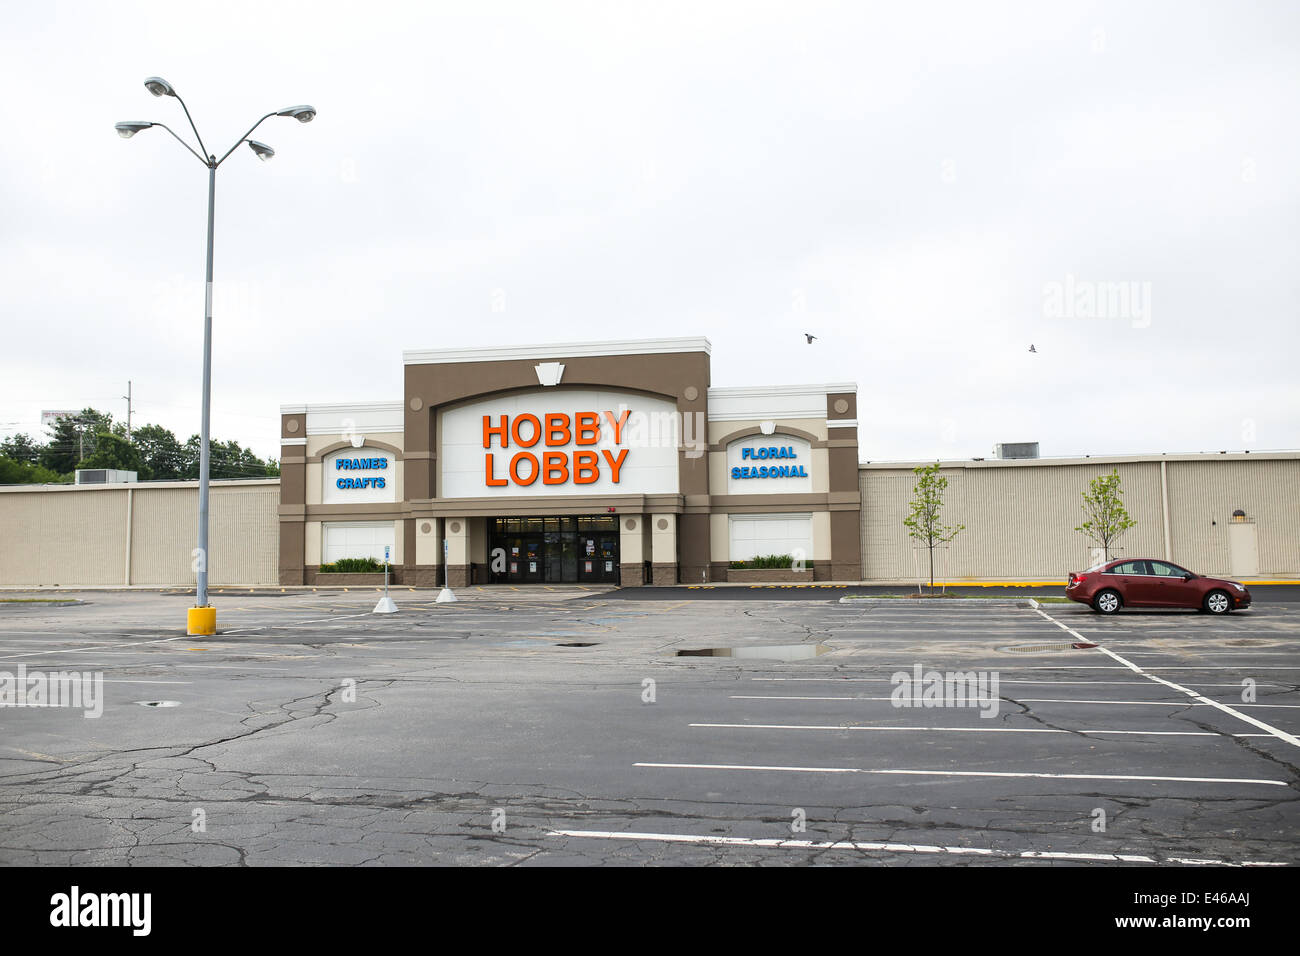 Manchester New Hampshire USA 3rd July 2014 The Hobby Lobby Contraceptive